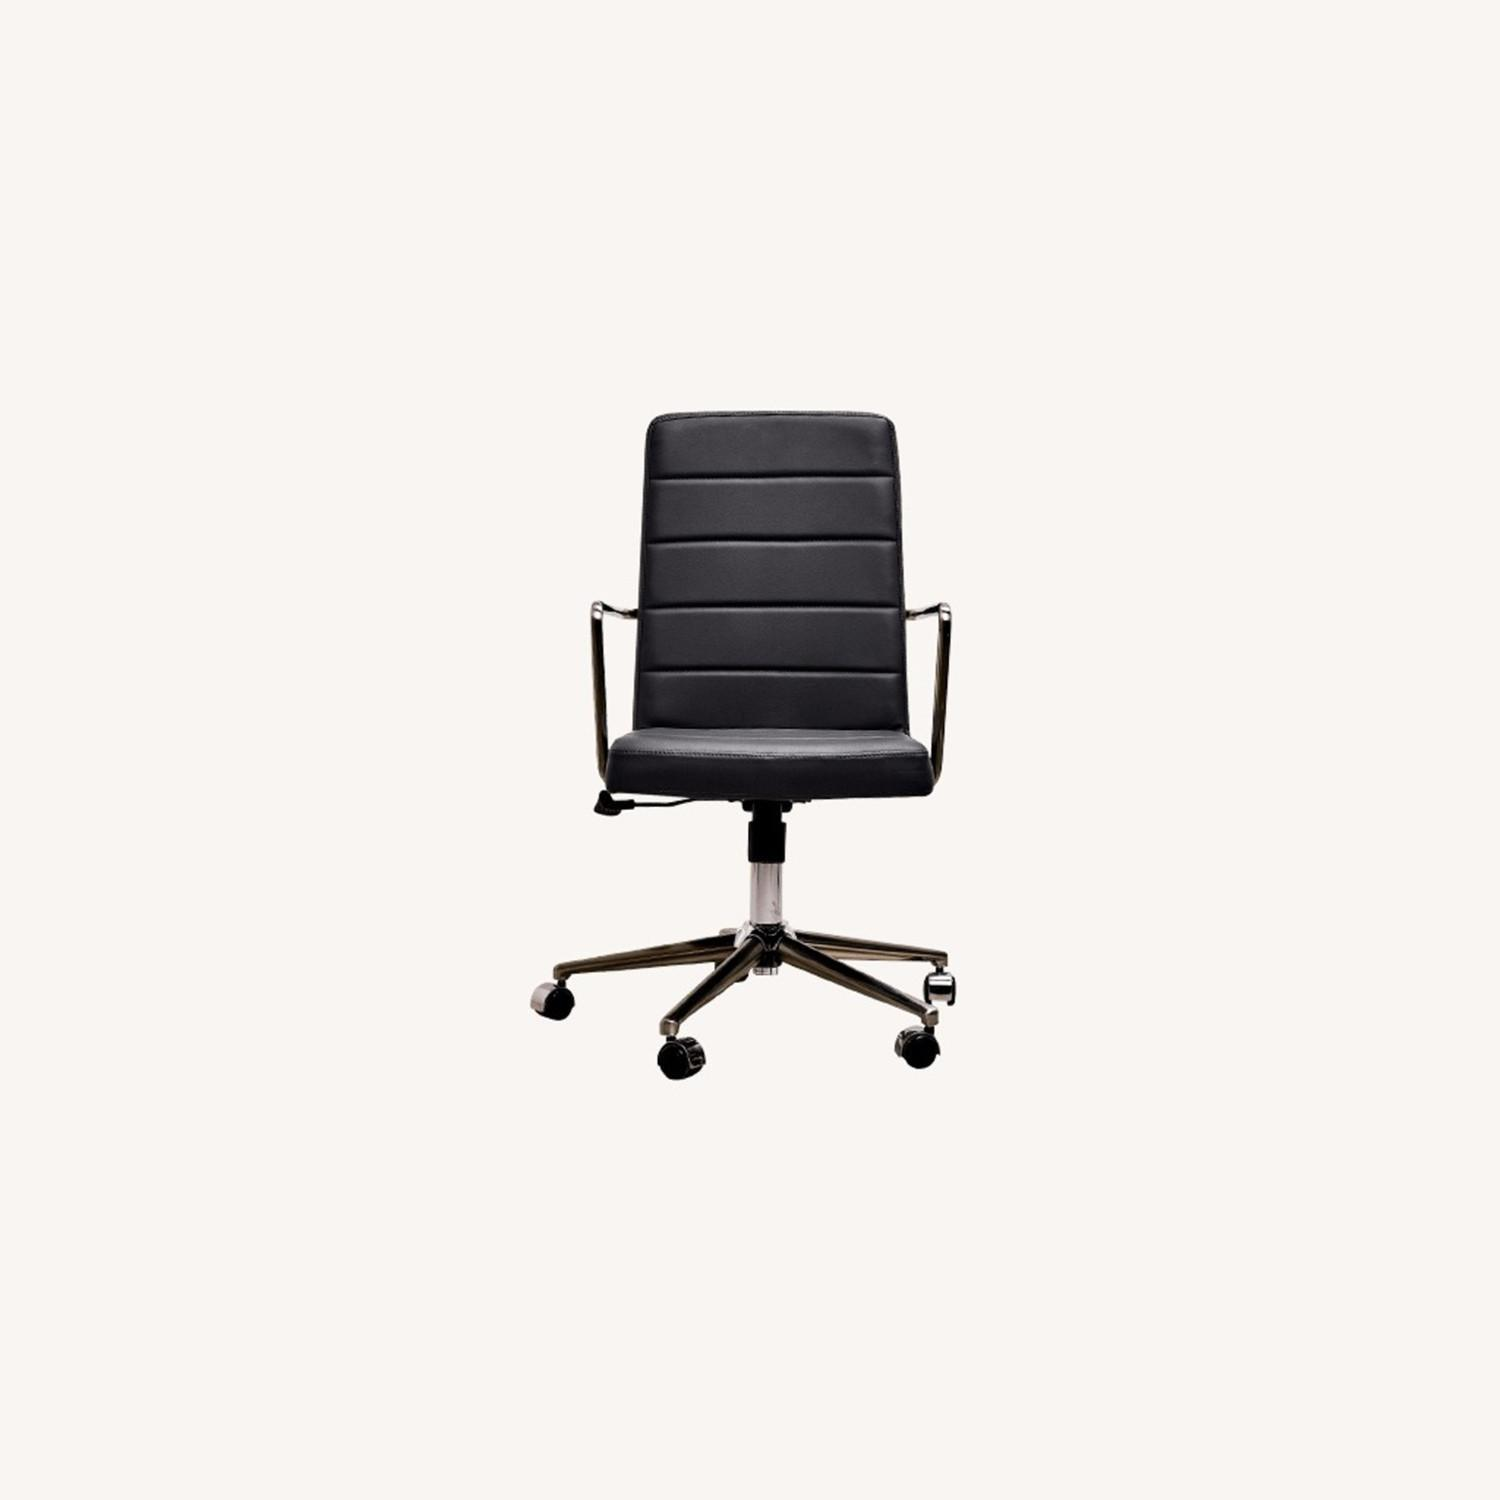 Feather Apalis Desk Chair - image-0